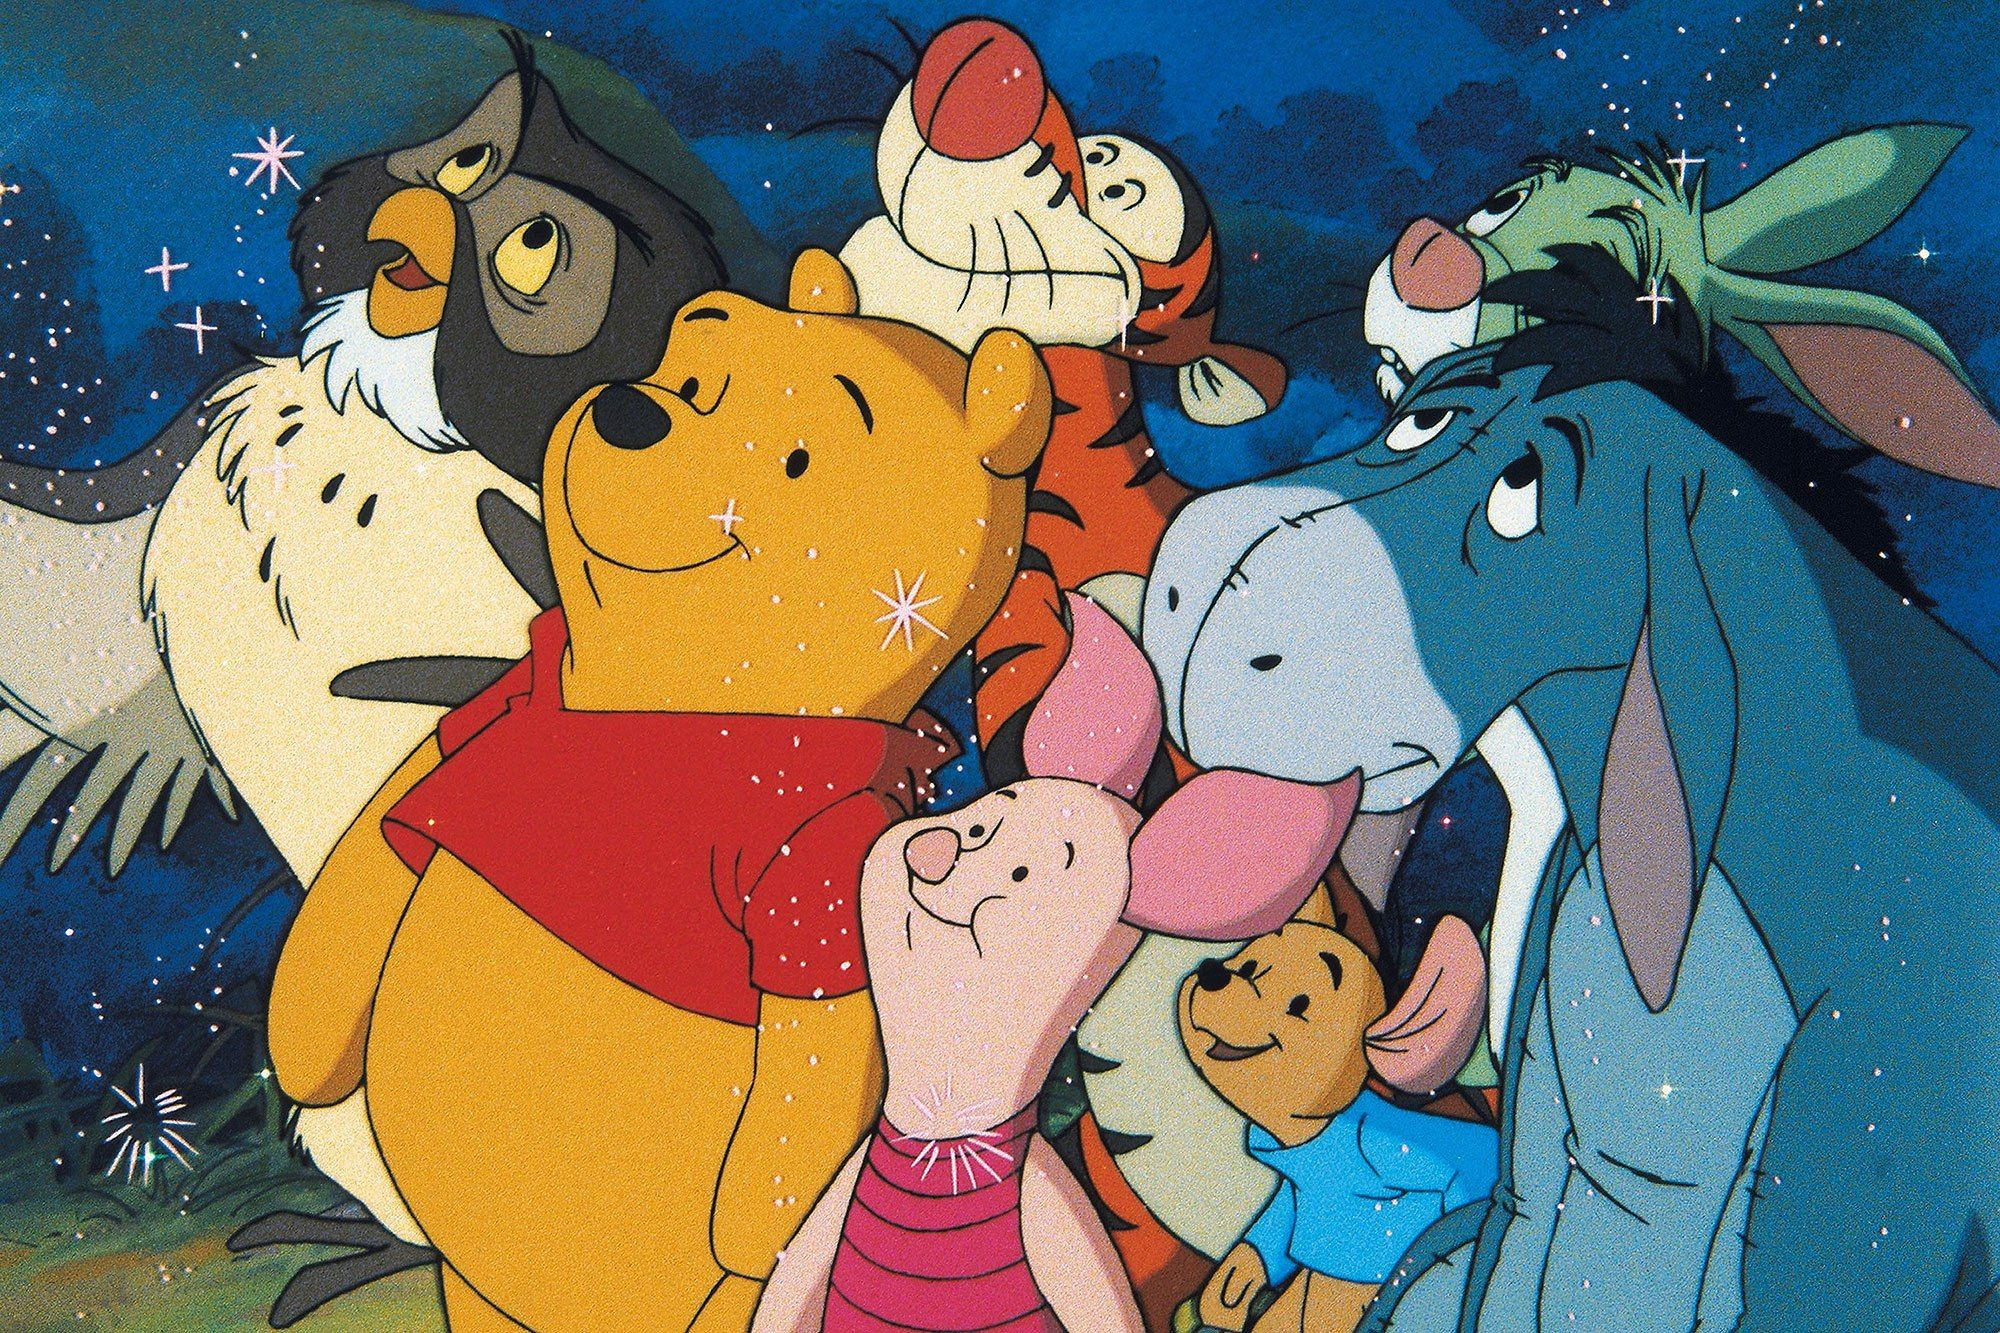 Best Quotes on Friendship from Winnie-the-Pooh